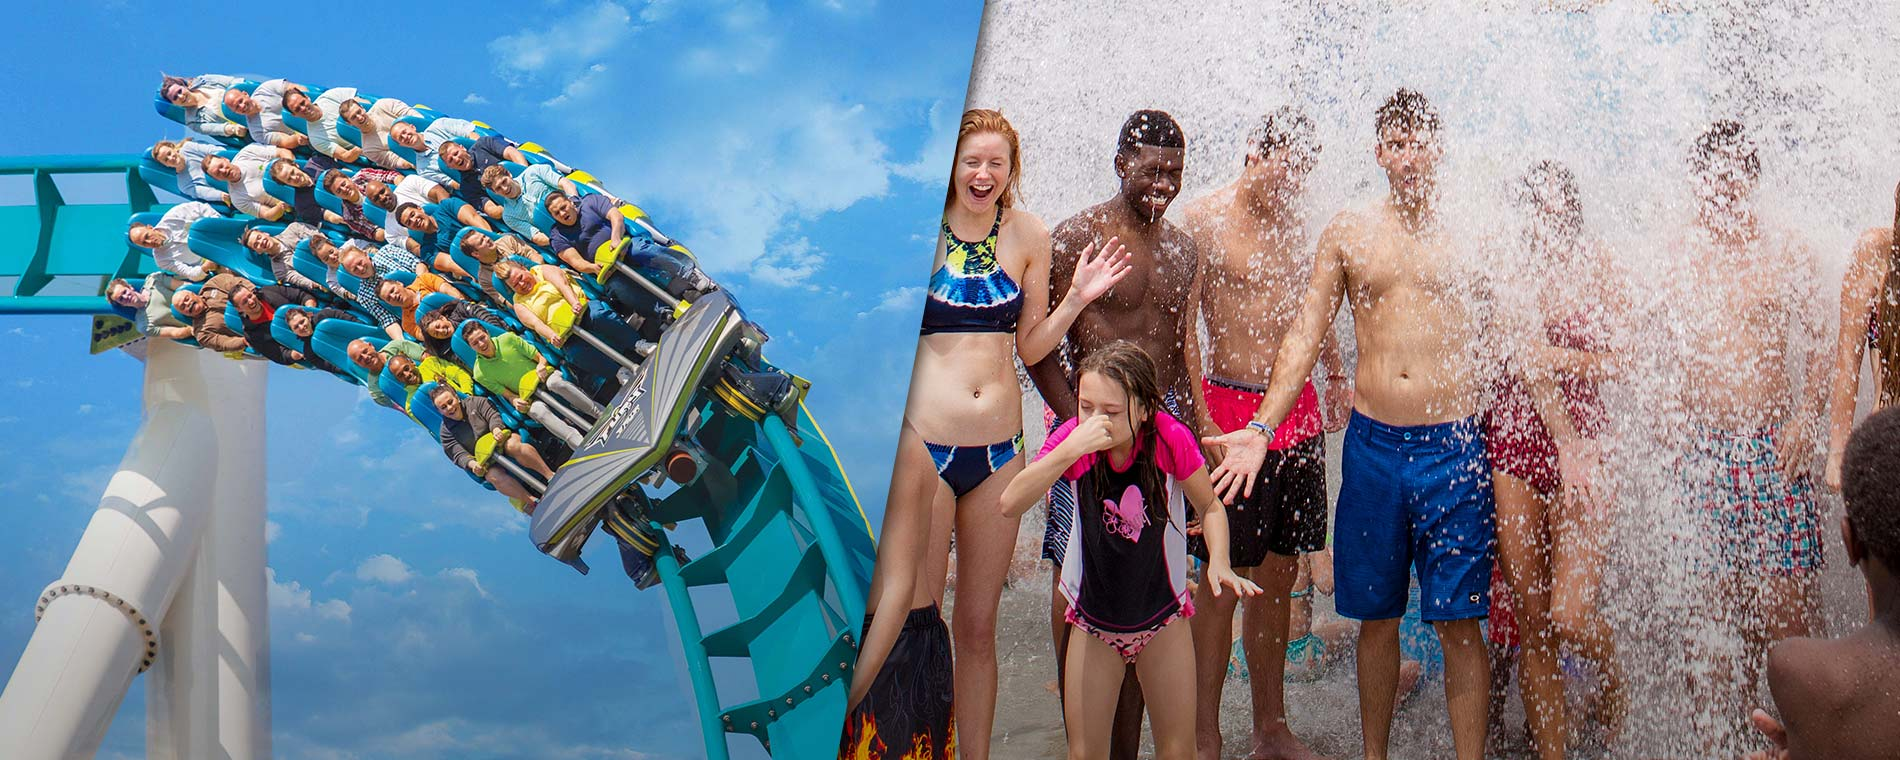 Get access to Carowinds and Carolina Harbor for one low price.